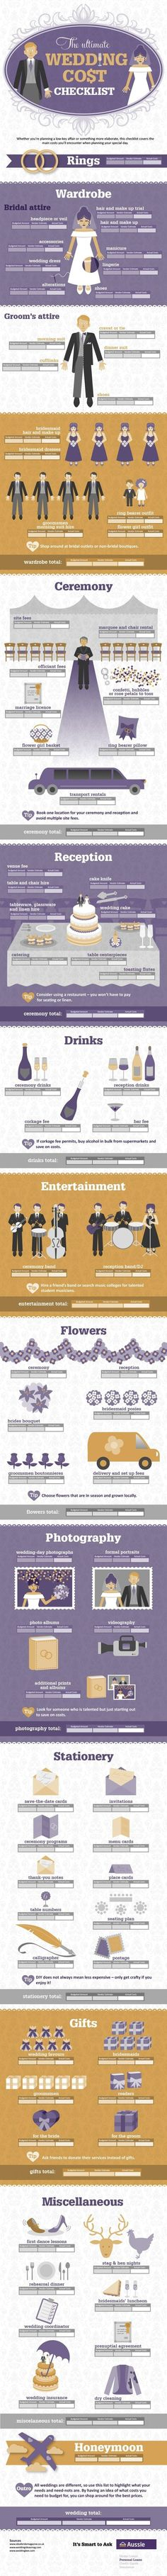 We're loving this detailed infographic to help you plan your wedding budget, from the wedding ring cost to the honeymoon and everything in between!